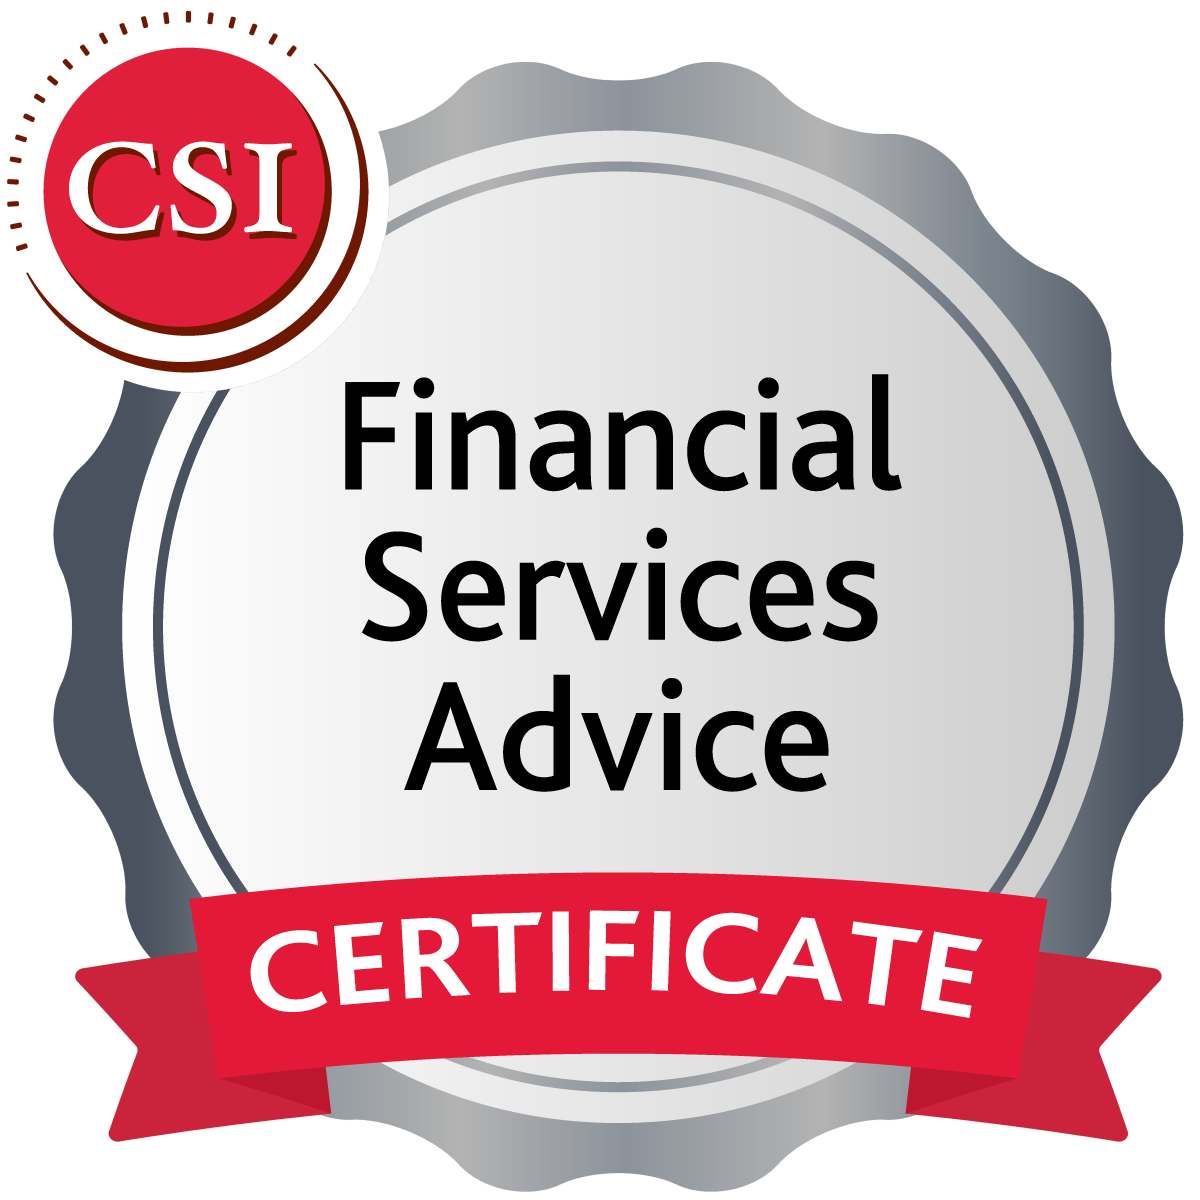 Certificate in Financial Services Advice